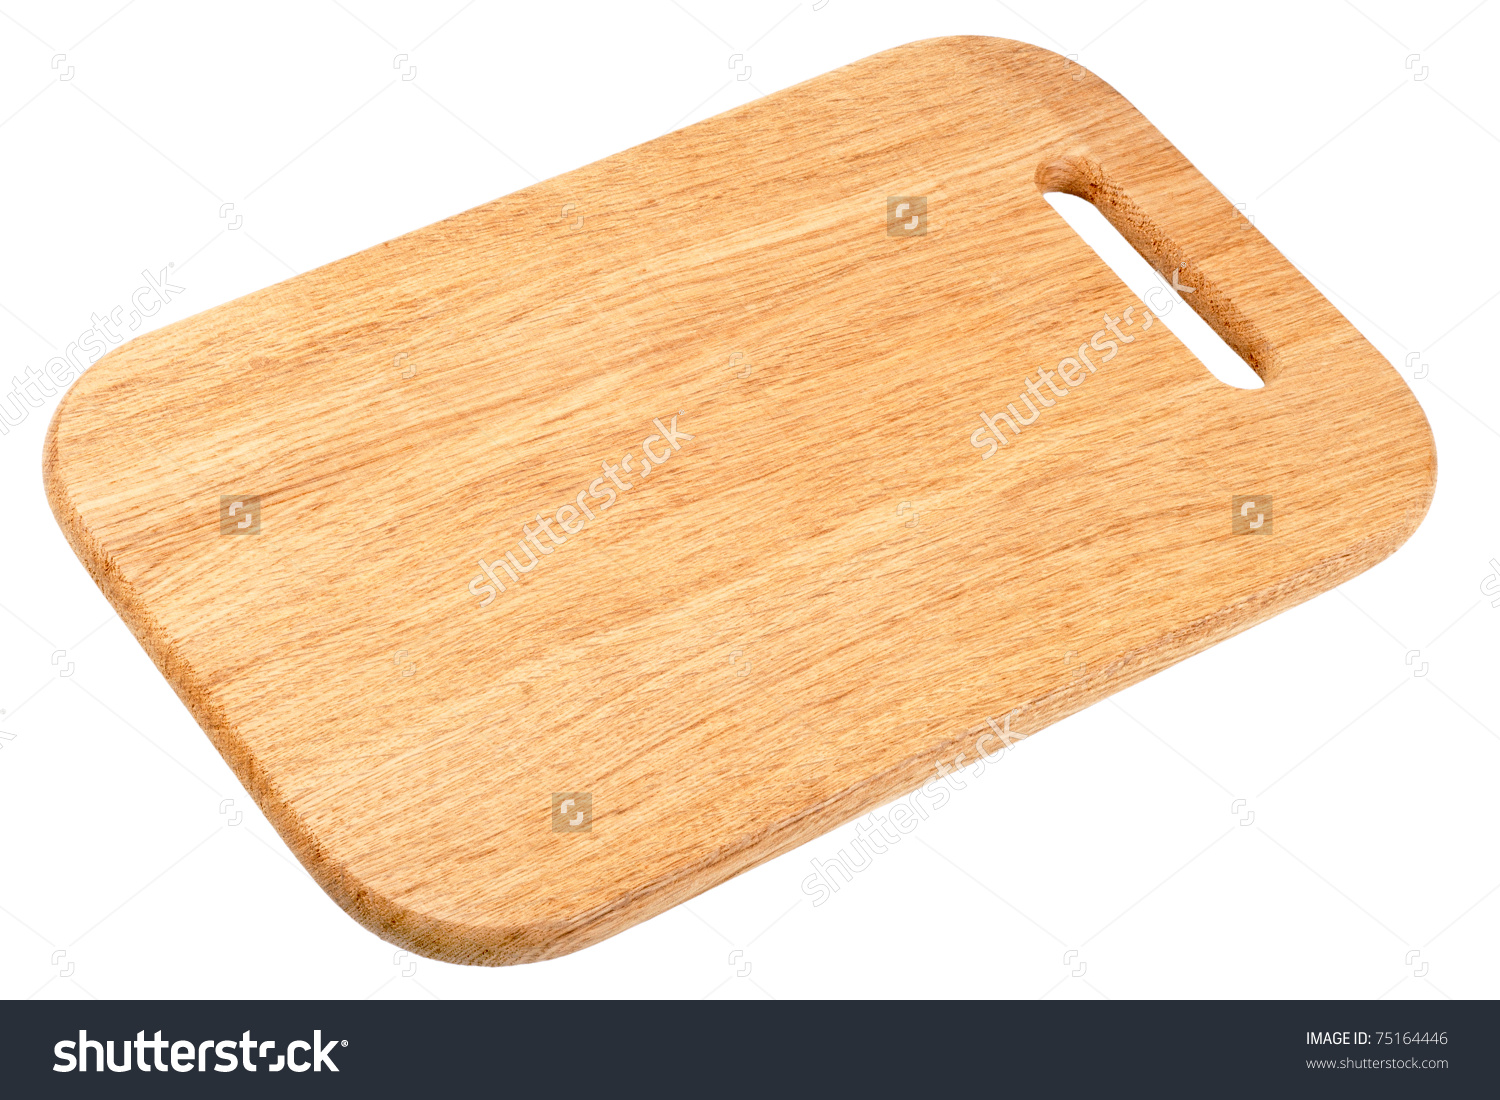 Wooden Chopping Board Isolated On White Stock Photo 75164446.